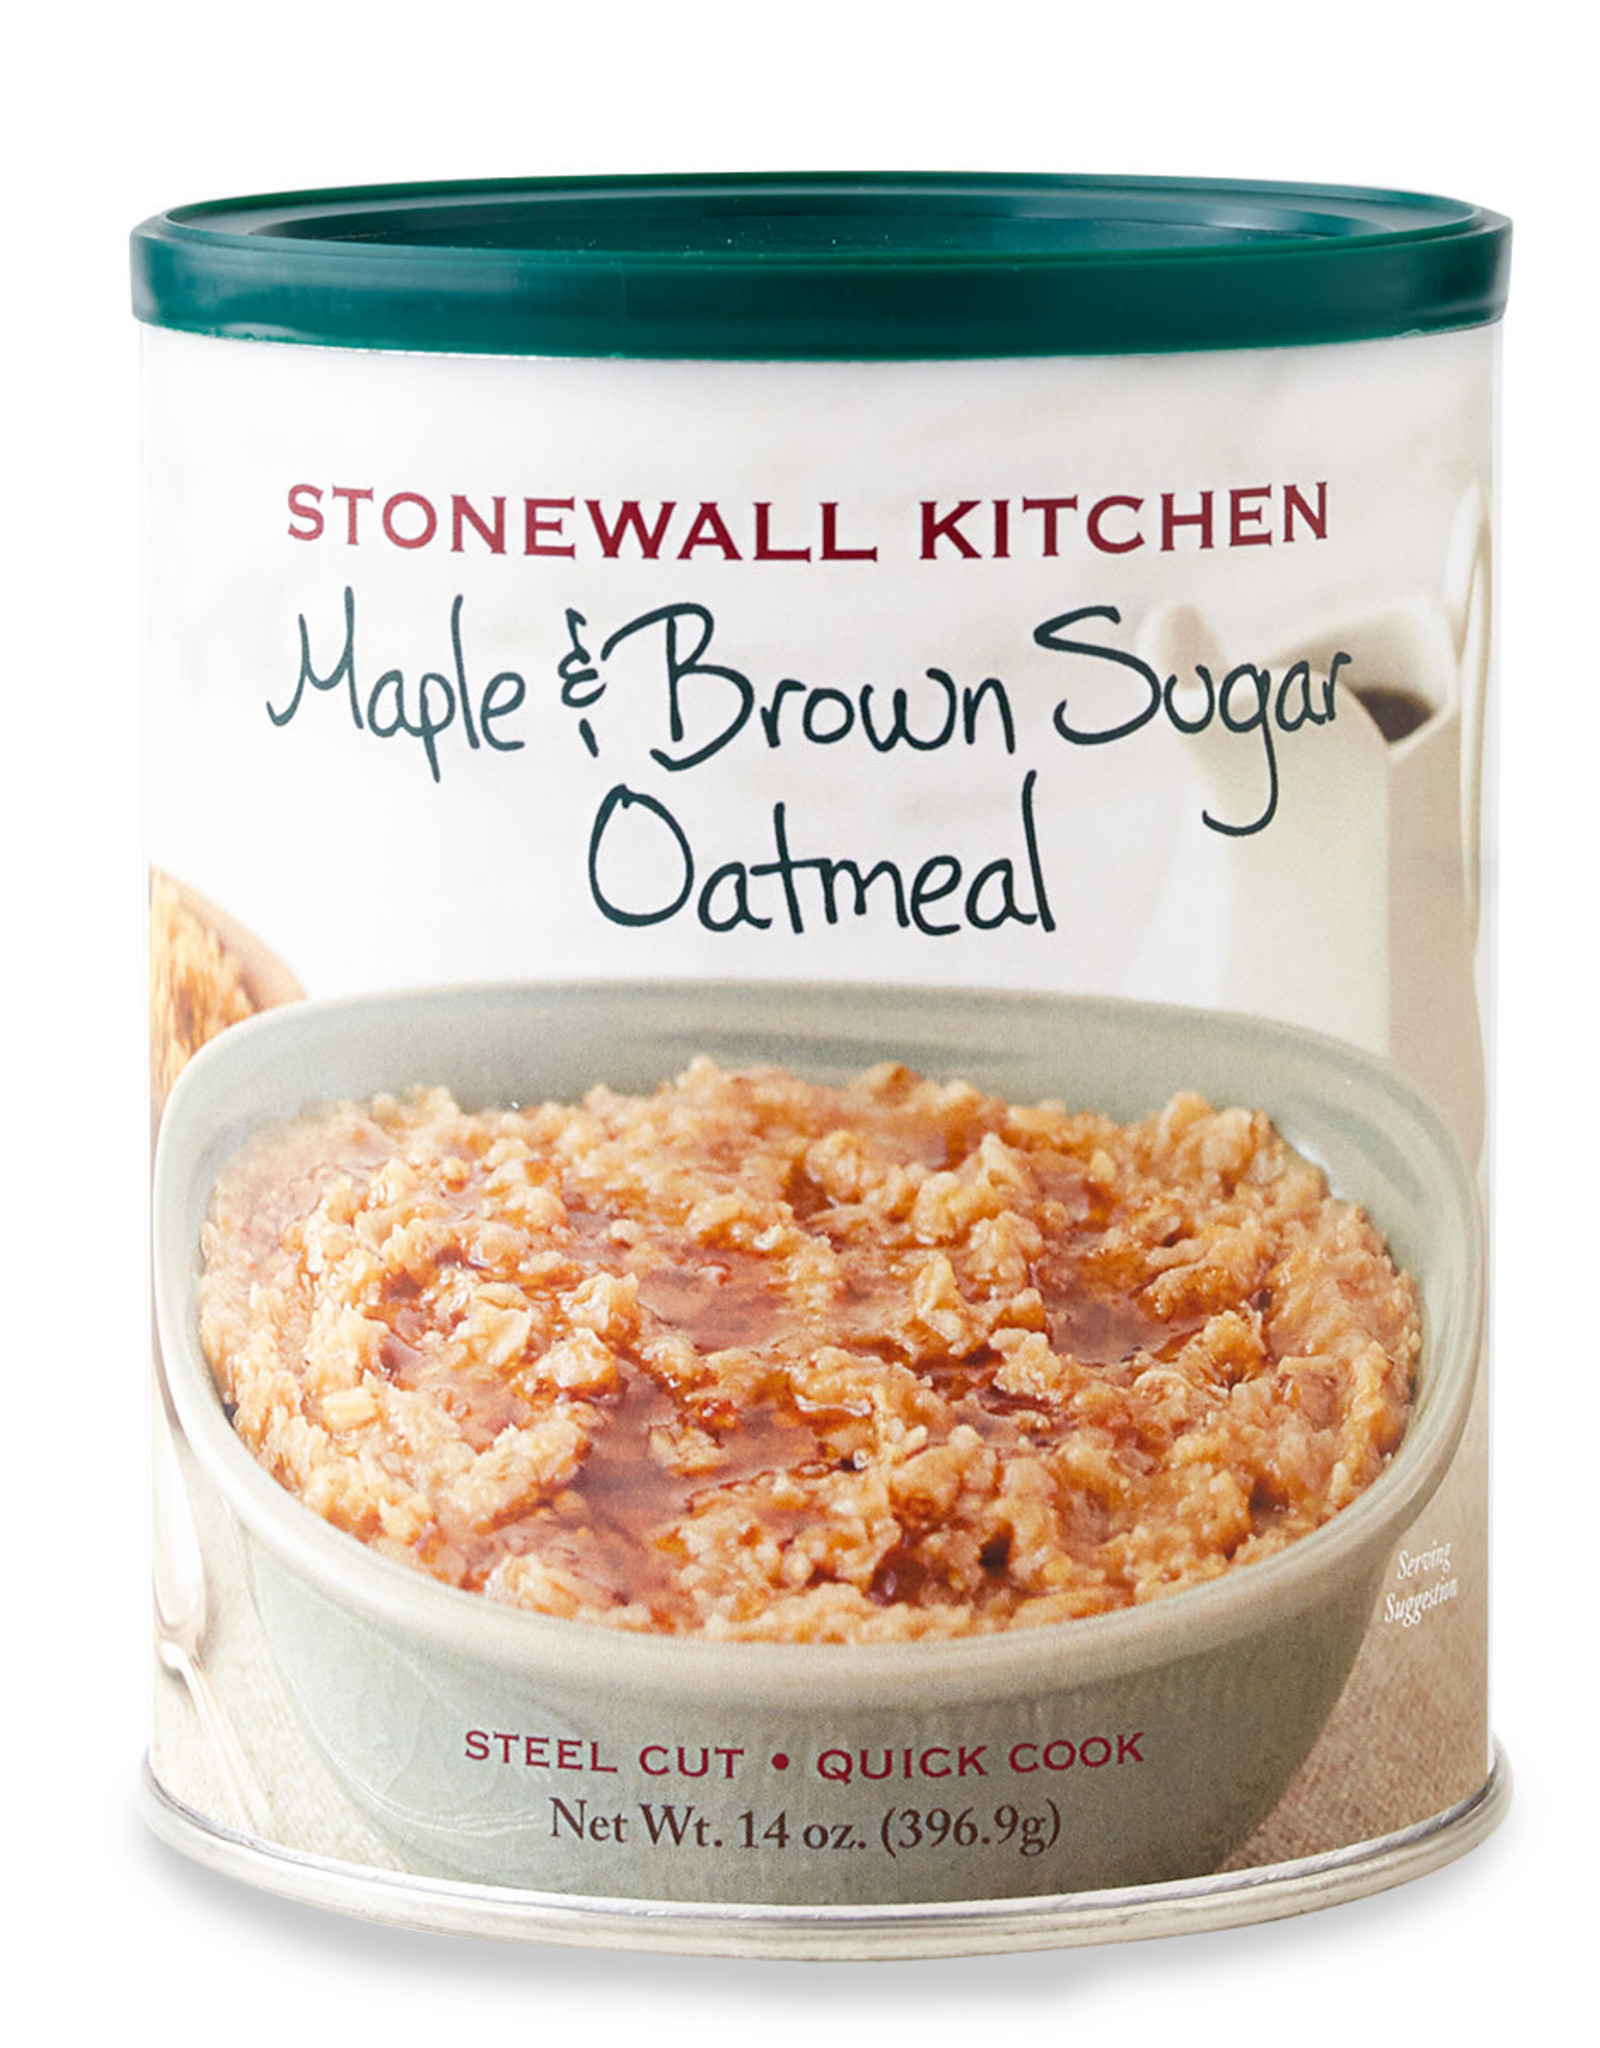 Stonewall Kitchen Maple Brown Sugar Oatmeal